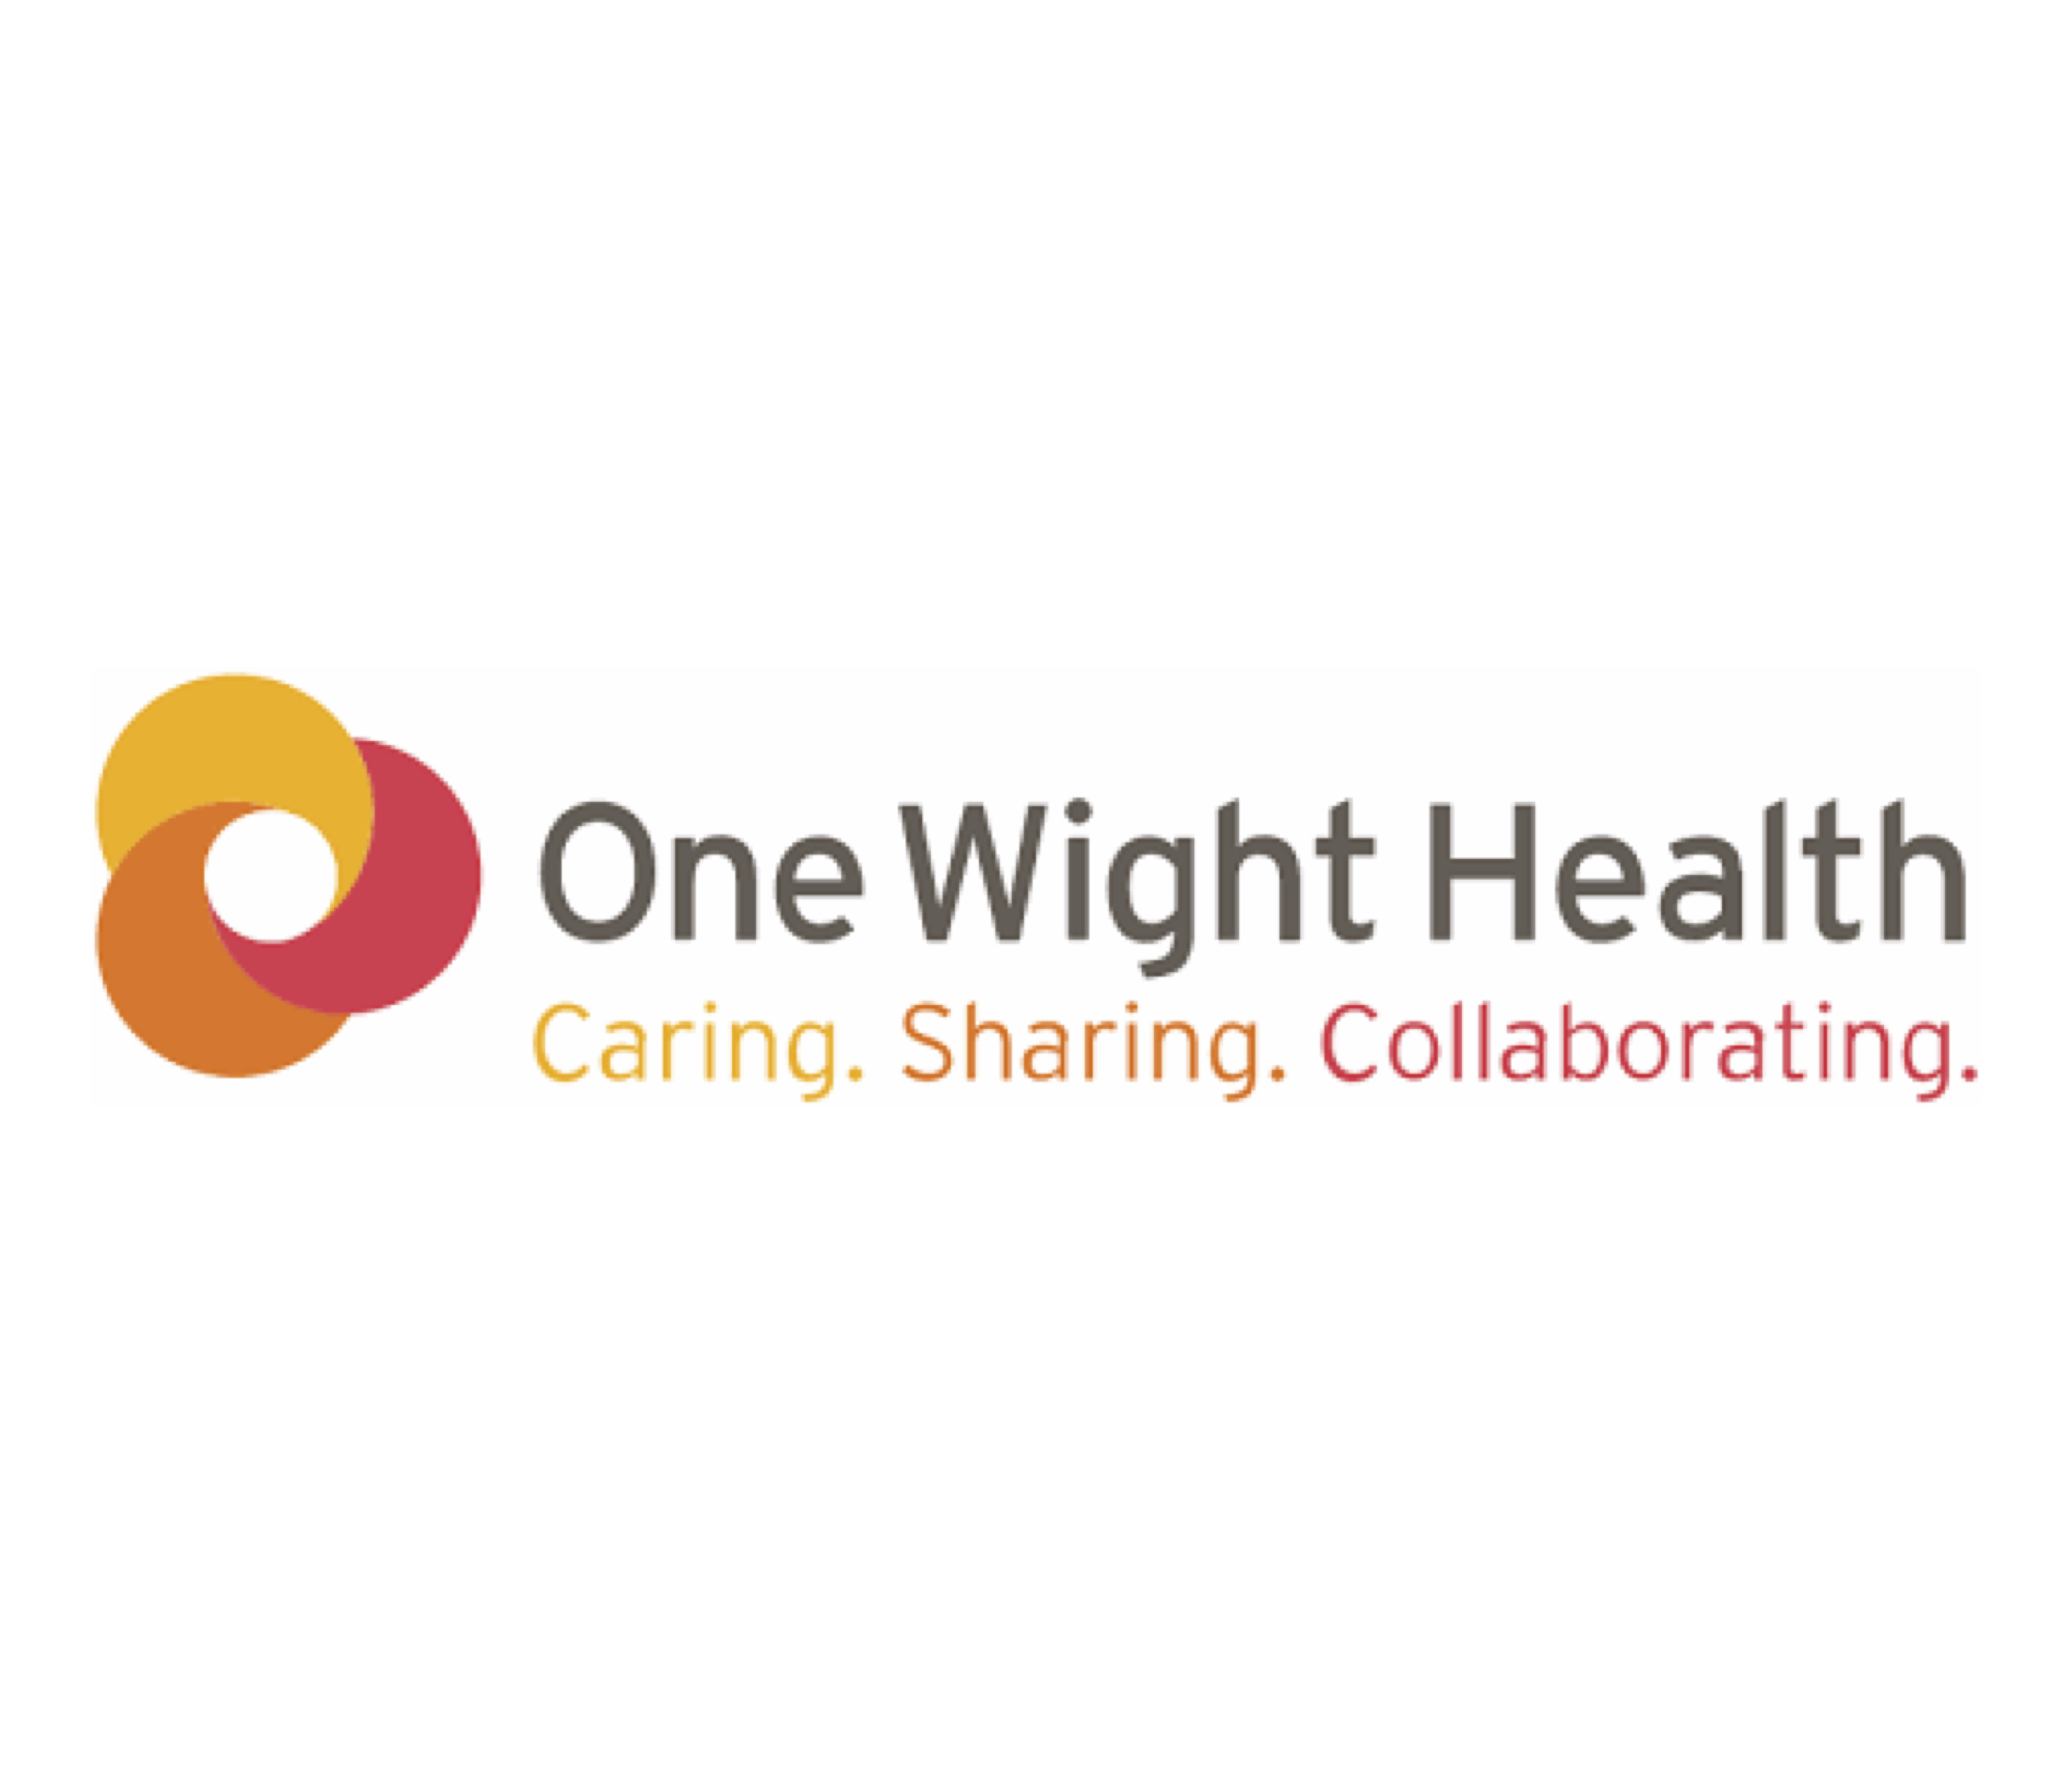 One Wight Health